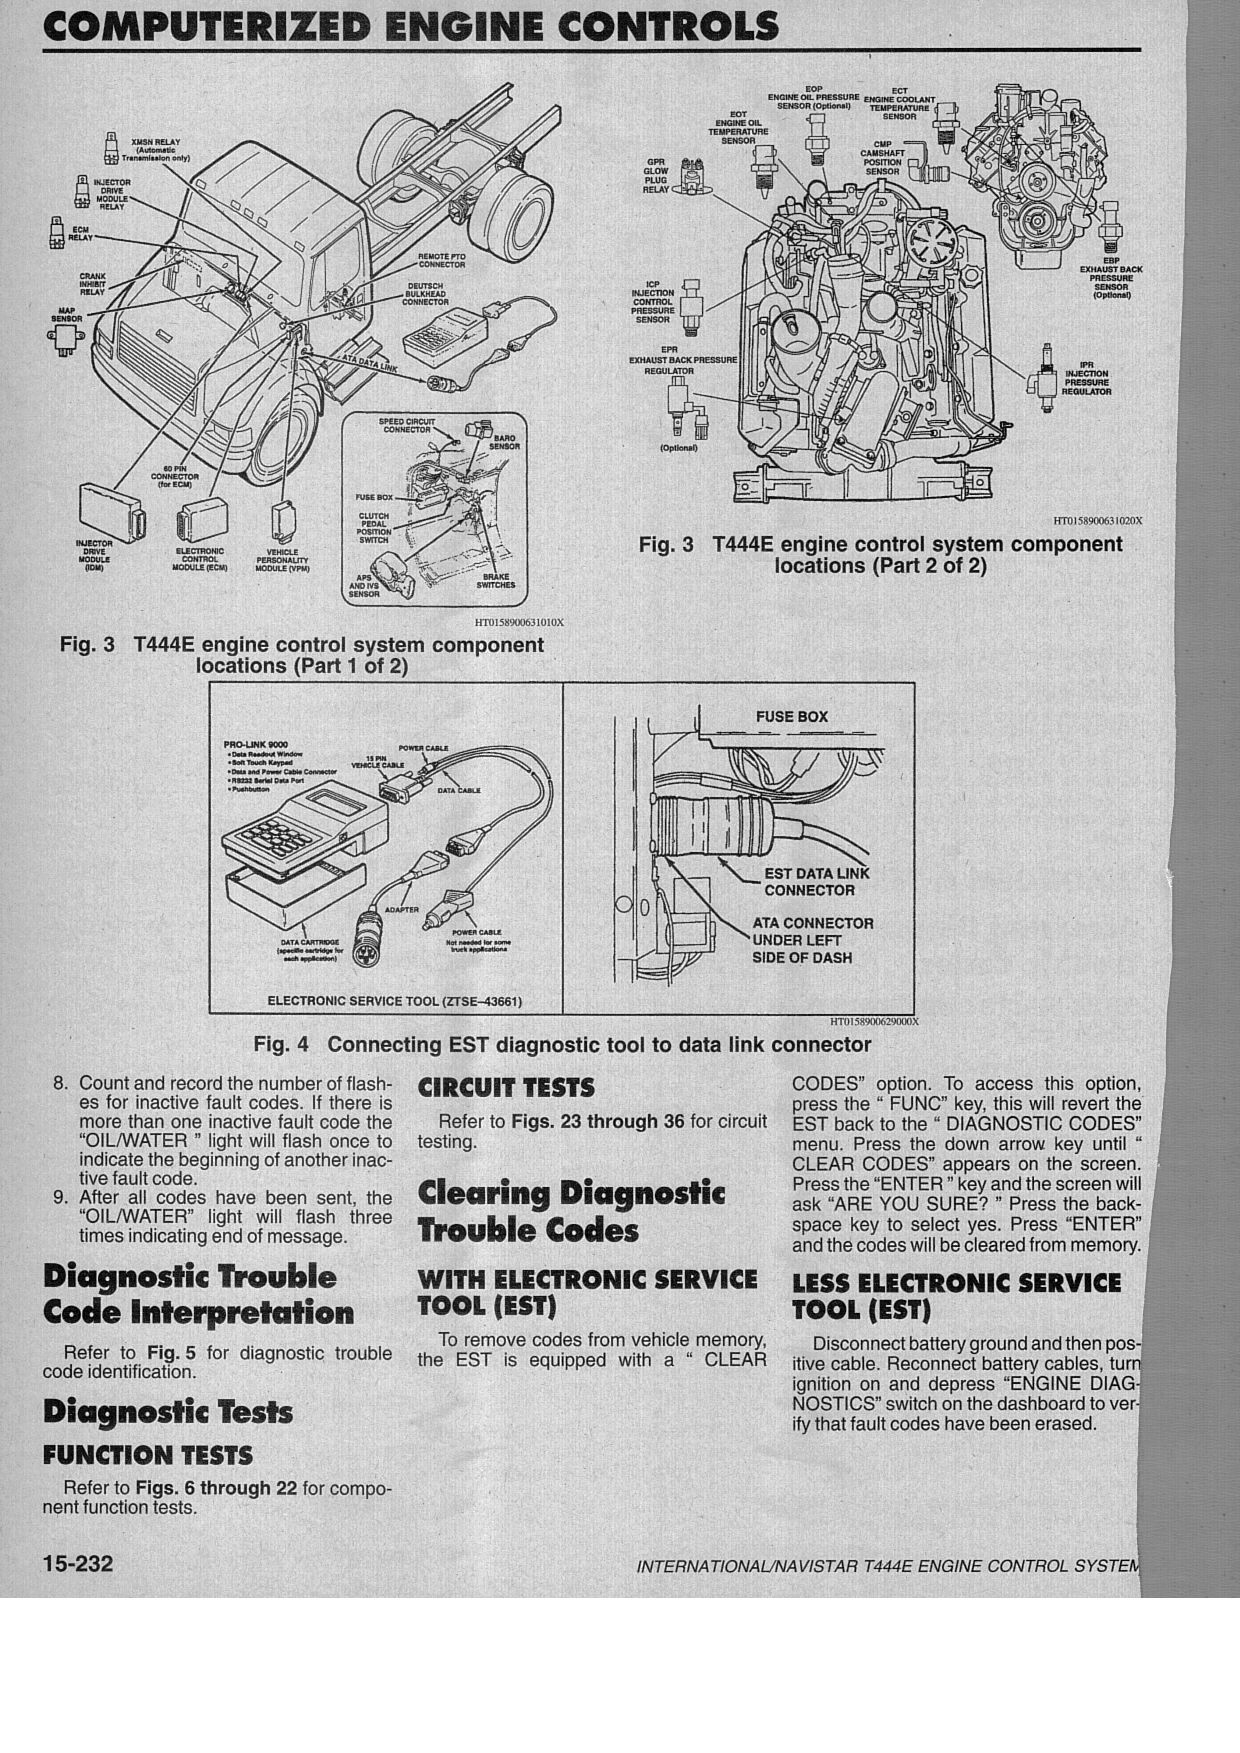 2009 07 30_180752_T444epg4 how do i get hold of a wiring diagram for a 1996 international t444e wiring diagram at bakdesigns.co